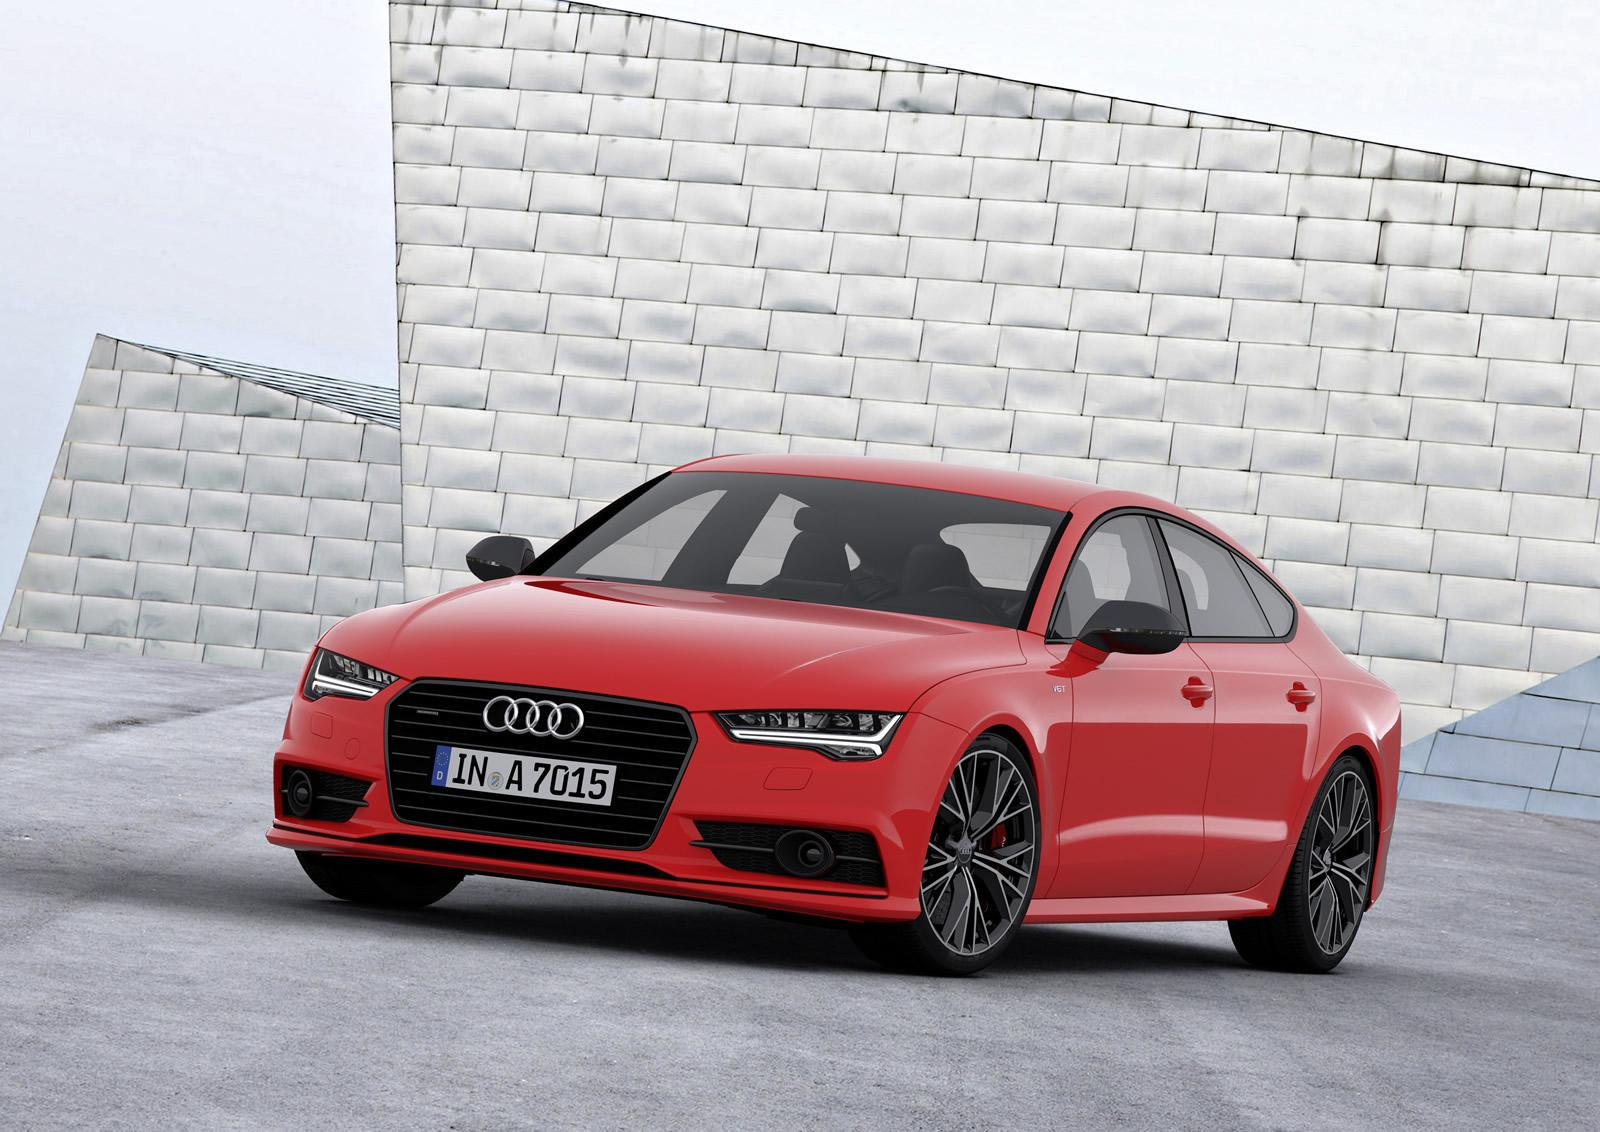 new audi a7 sportback 3 0 tdi competition packs 326 hp of. Black Bedroom Furniture Sets. Home Design Ideas